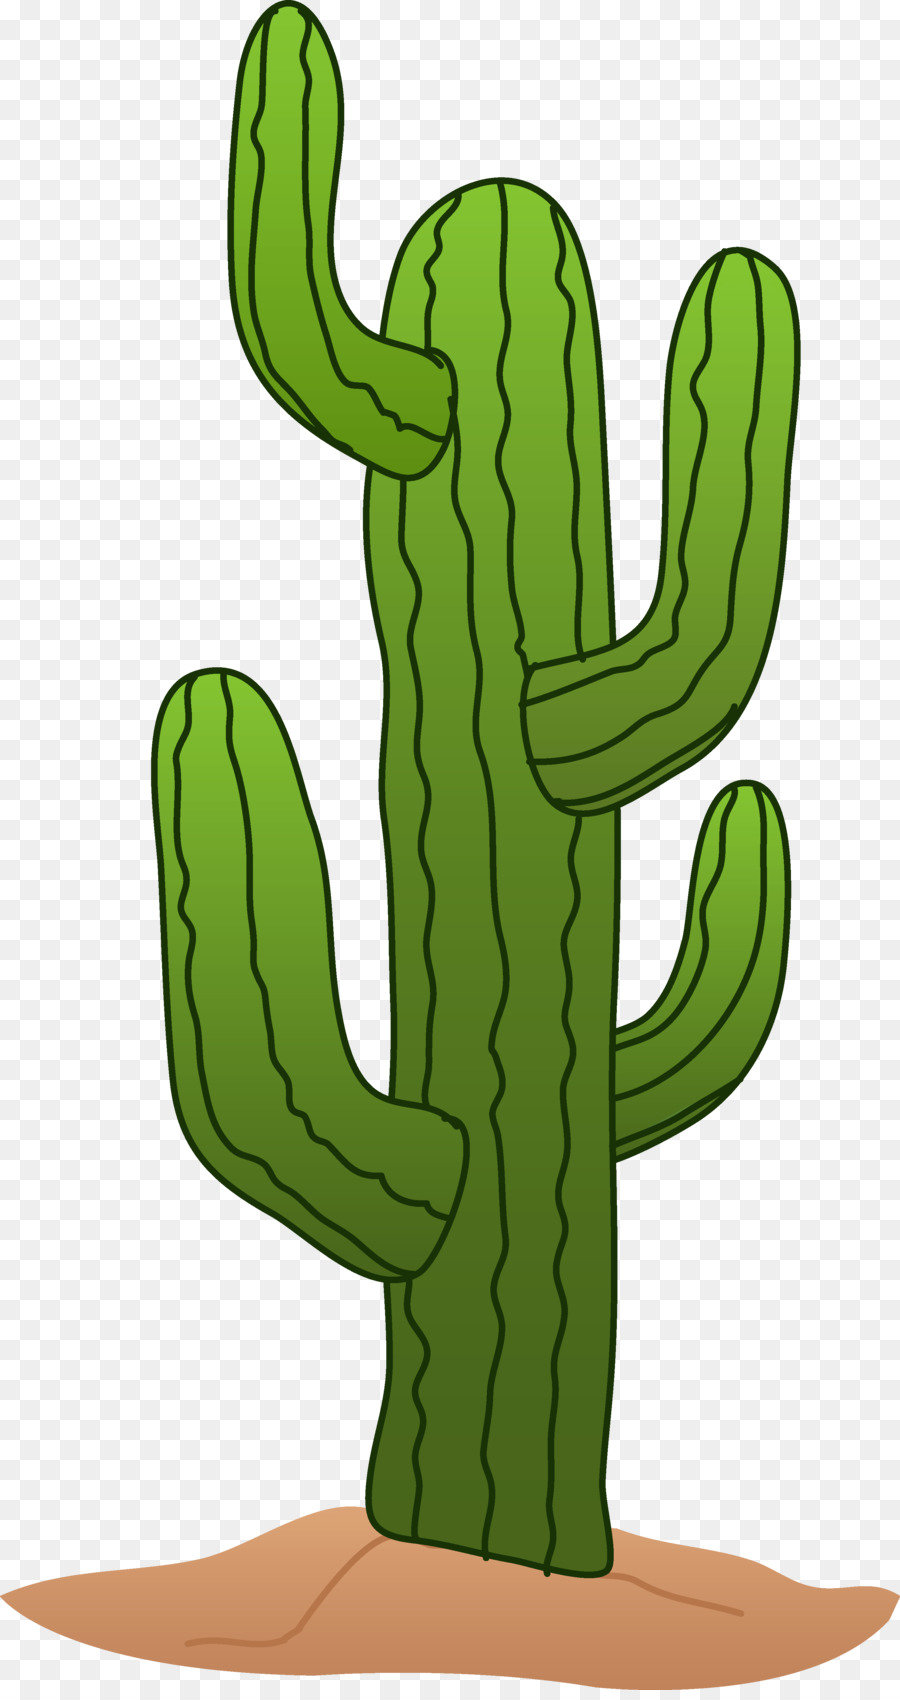 Cactus cartoon. Clipart hand tree transparent